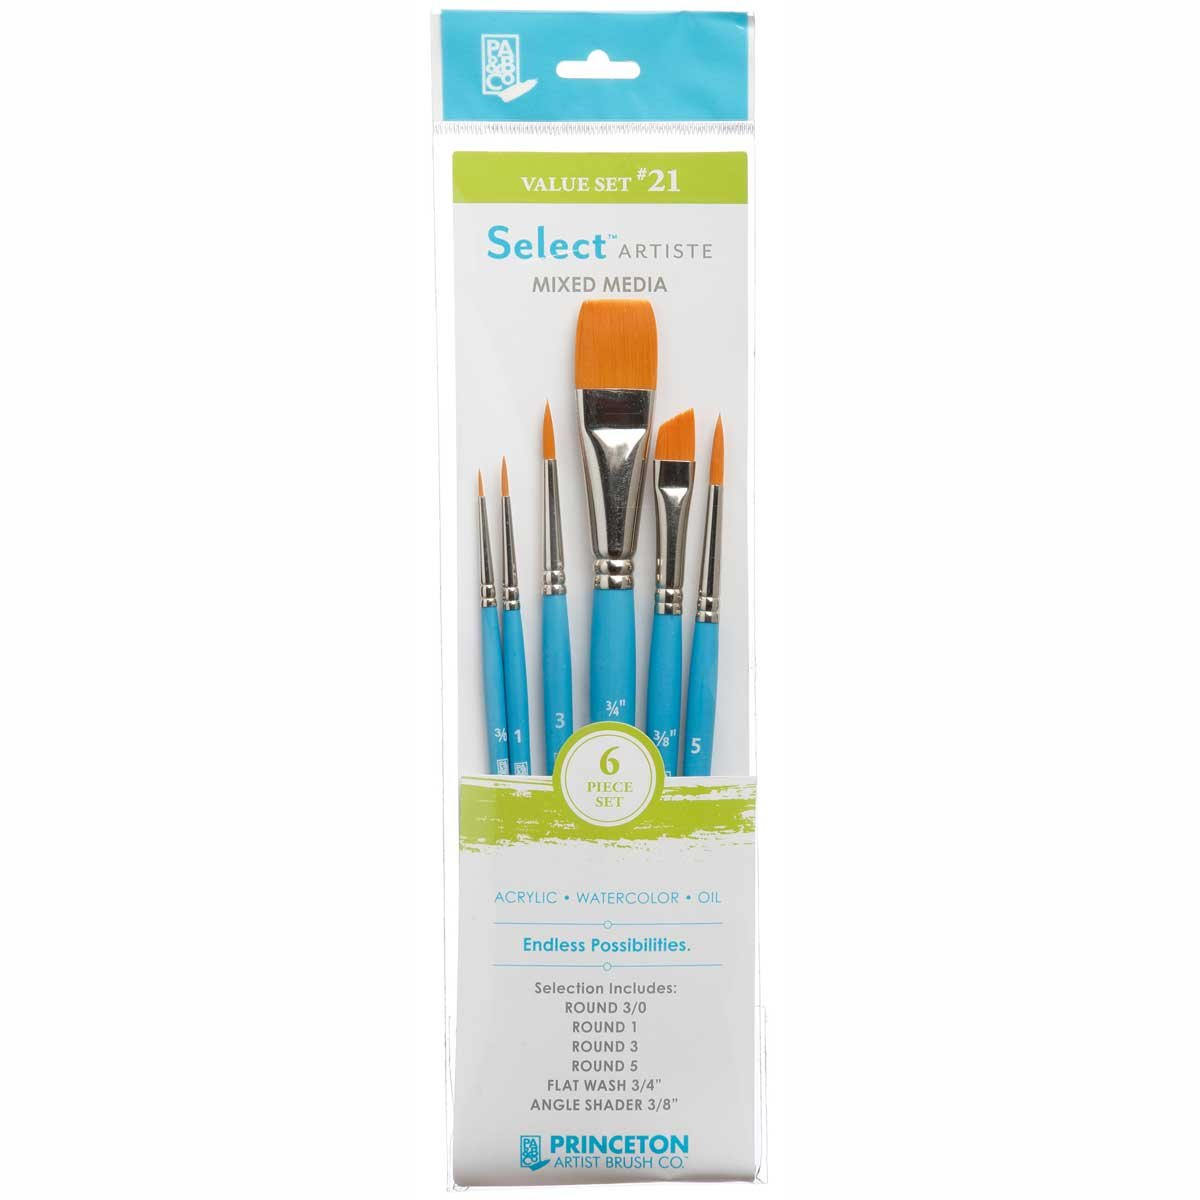 Princeton Select Artiste, Mixed-Media Brushes for Acrylic, Oil, Watercolor Series 3750, 6 Piece Value Set 122